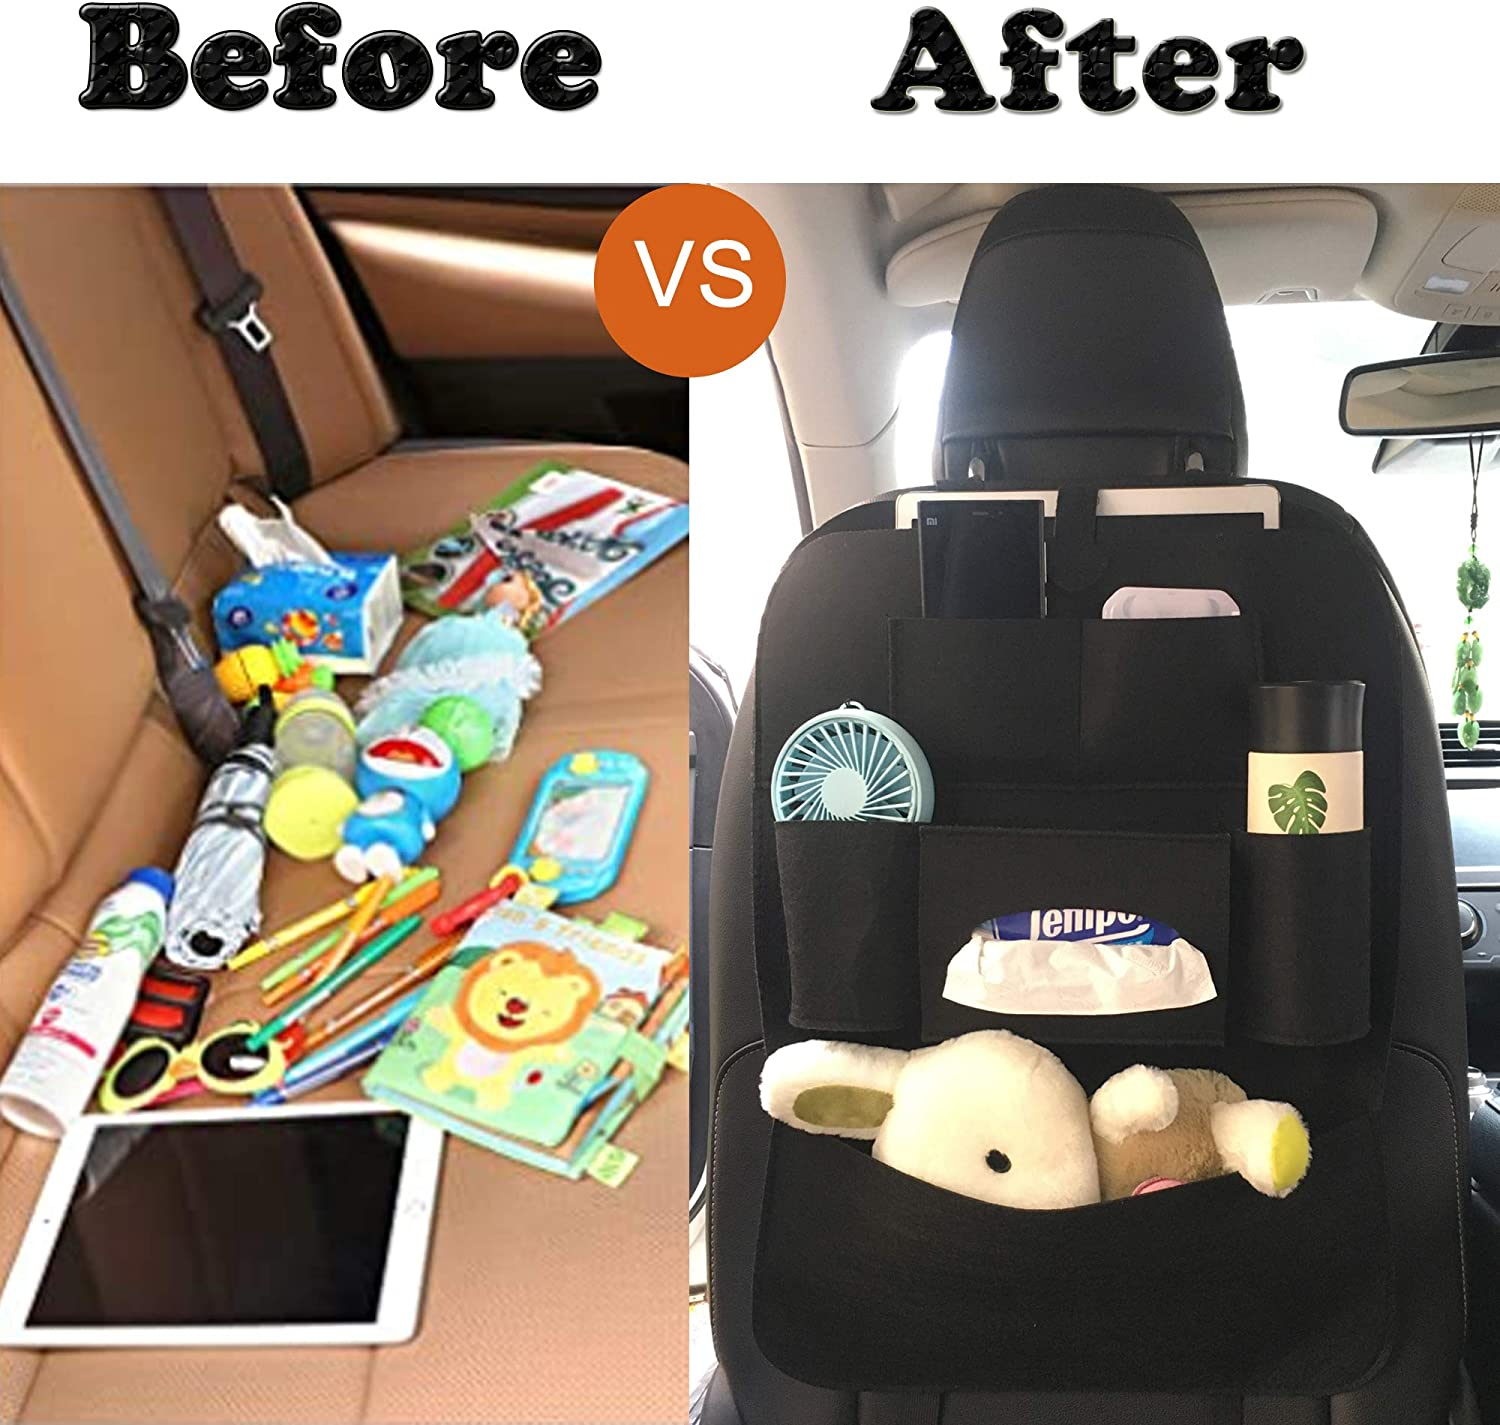 GREATEE Car Backseat Organizer and Storage 2PCS - Black Road Trip Essentials 6 Storage Pockets with Tissue Box Back Seat Protector Kick Mats for Kids